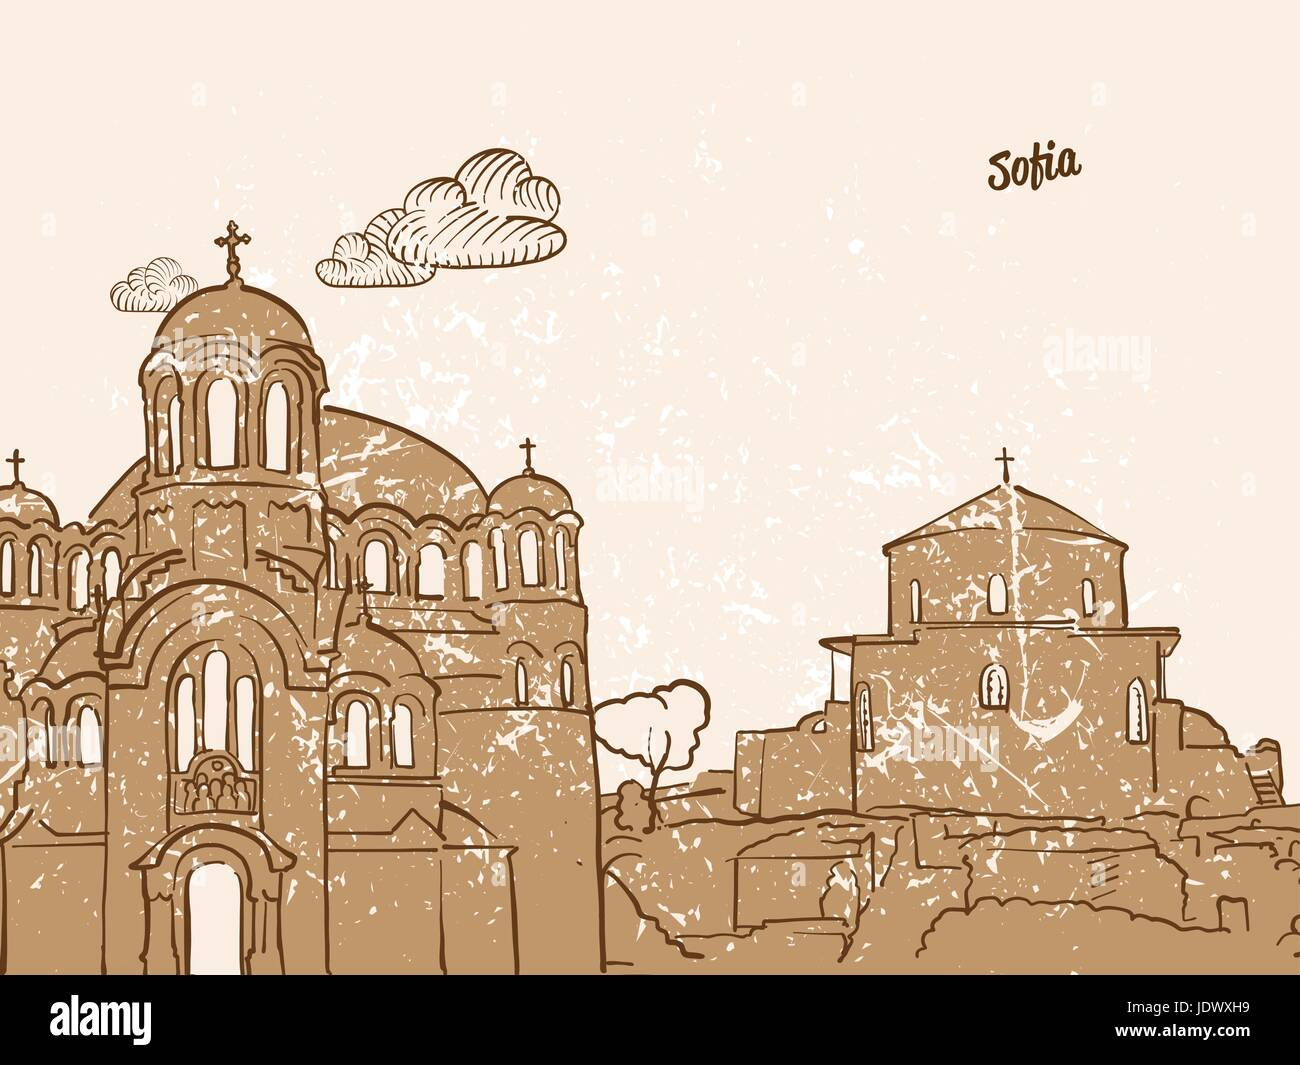 Sofia, Bulgaria, Greeting Card, hand drawn image, famous european capital, vintage style, vector Illustration - Stock Vector